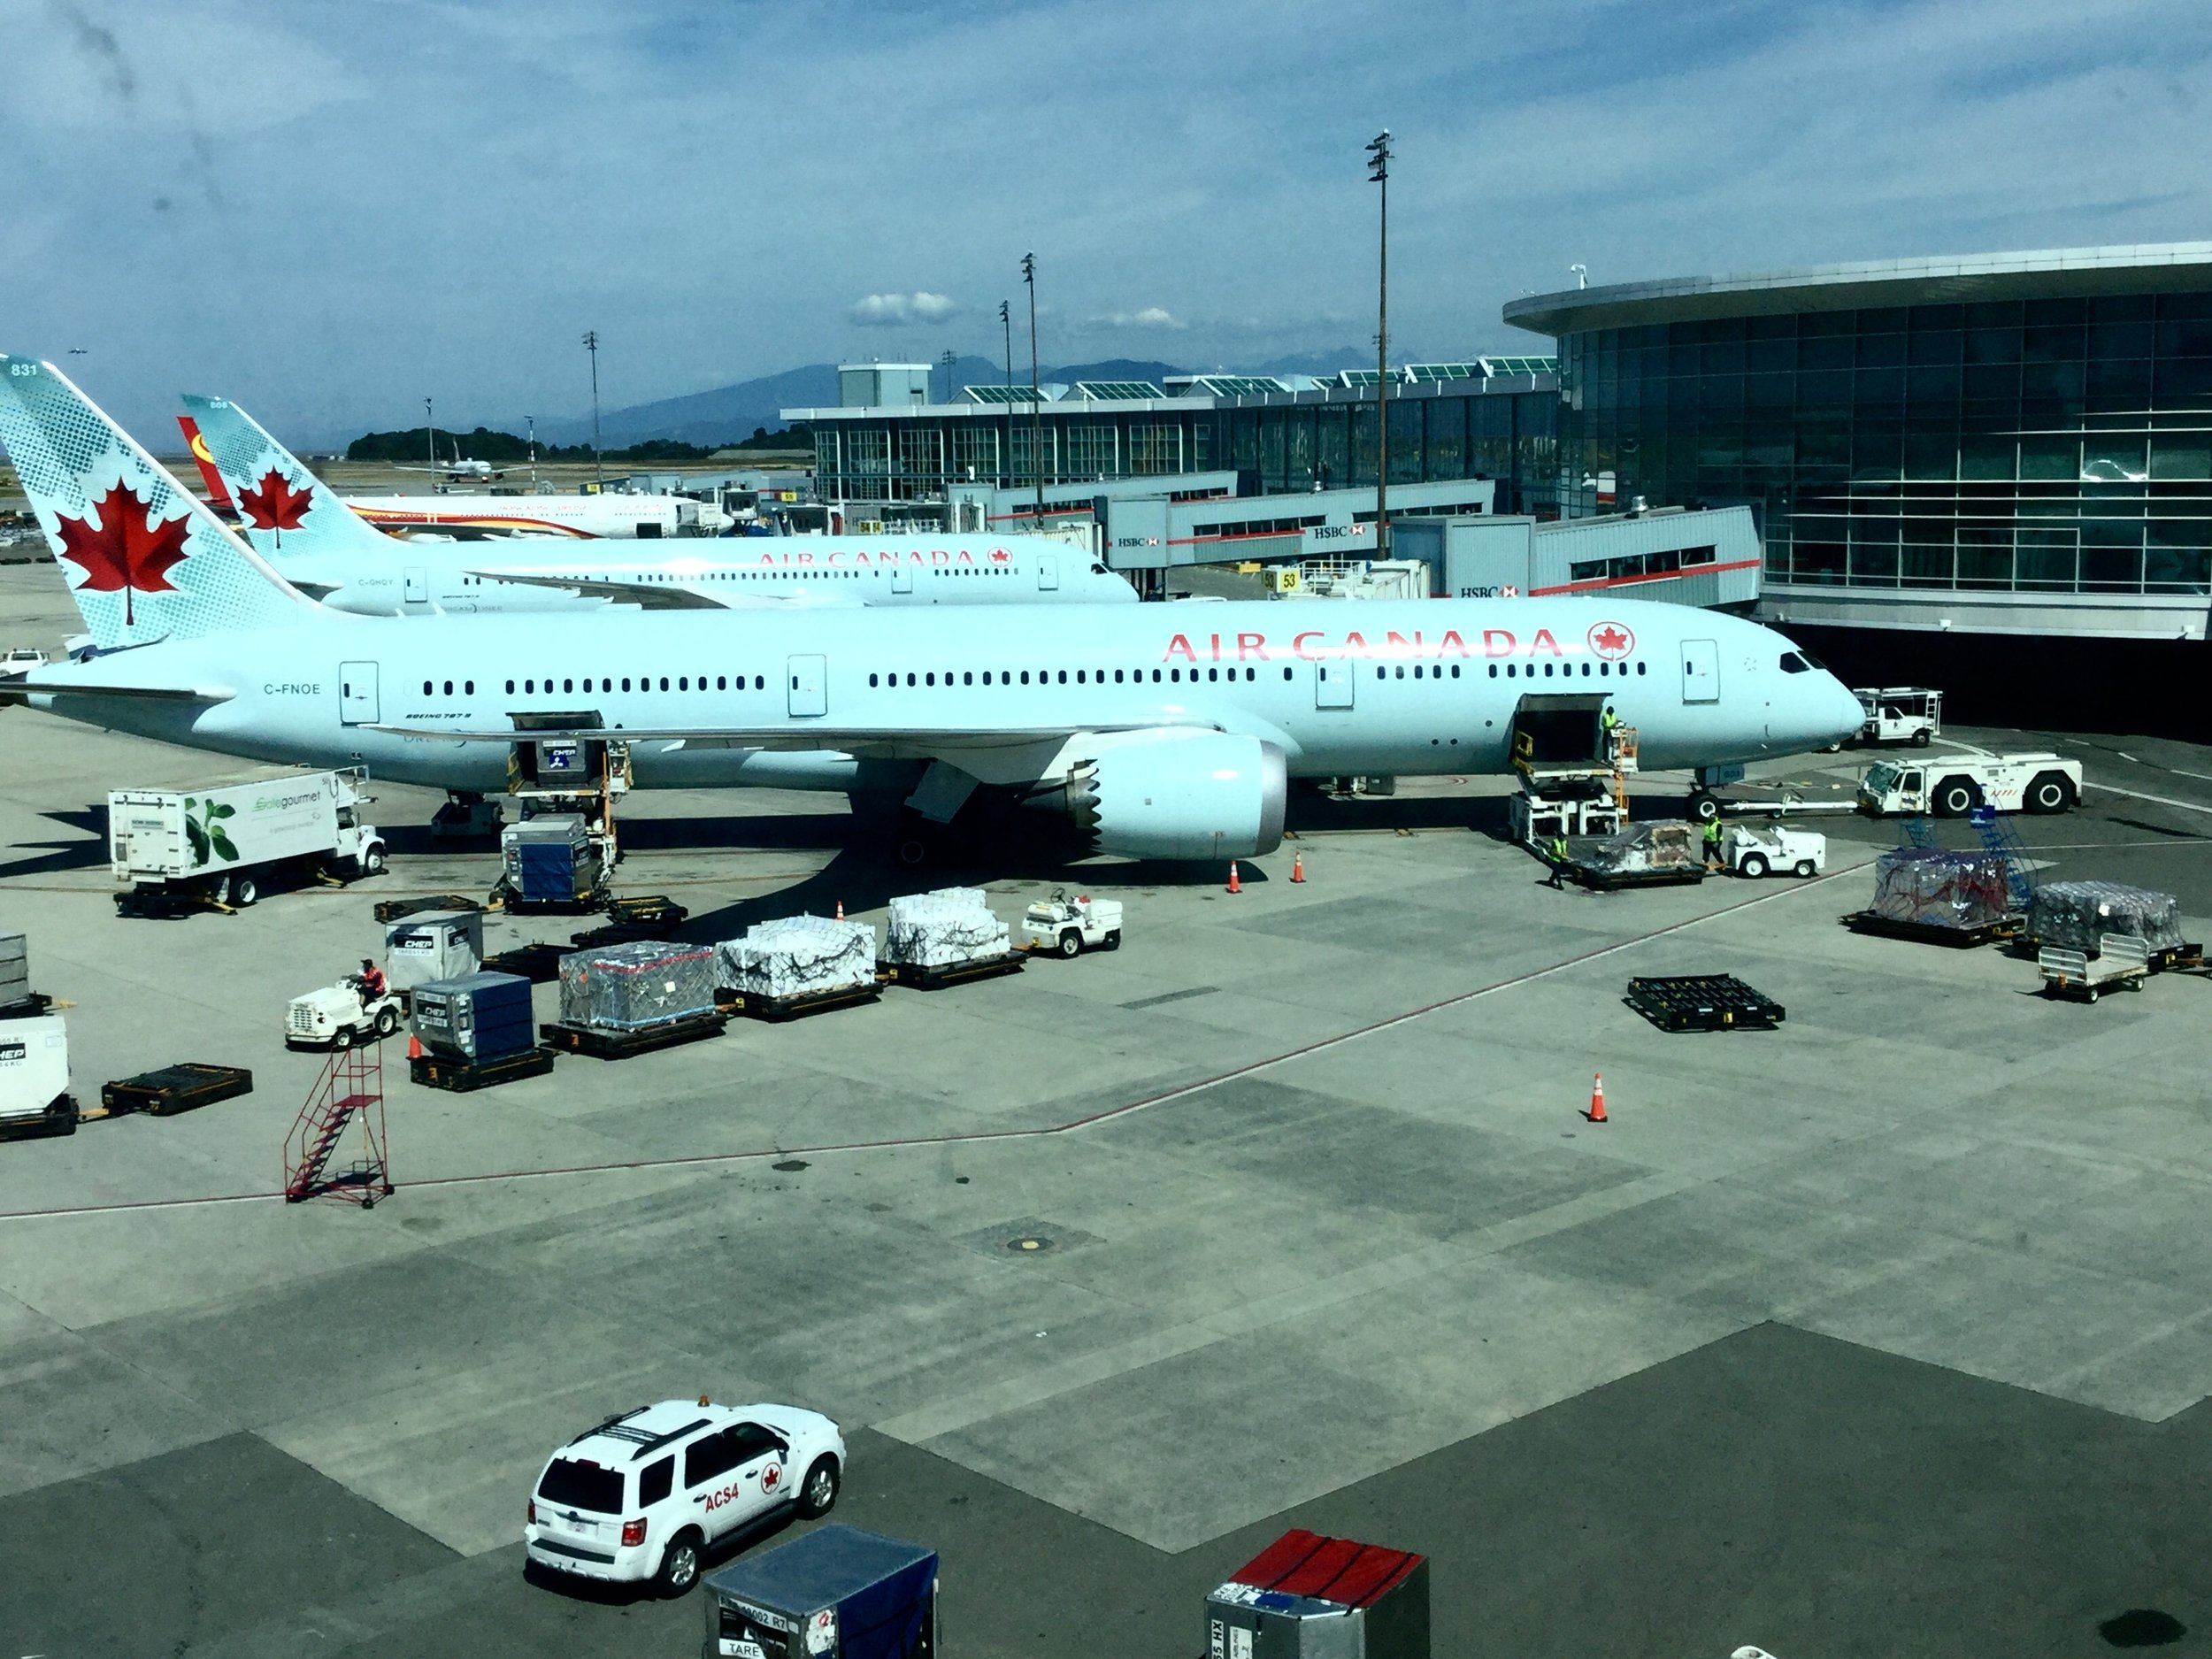 Our Air Canada 787-8 Dreamliner at YVR being readied for the long flight to FRA.